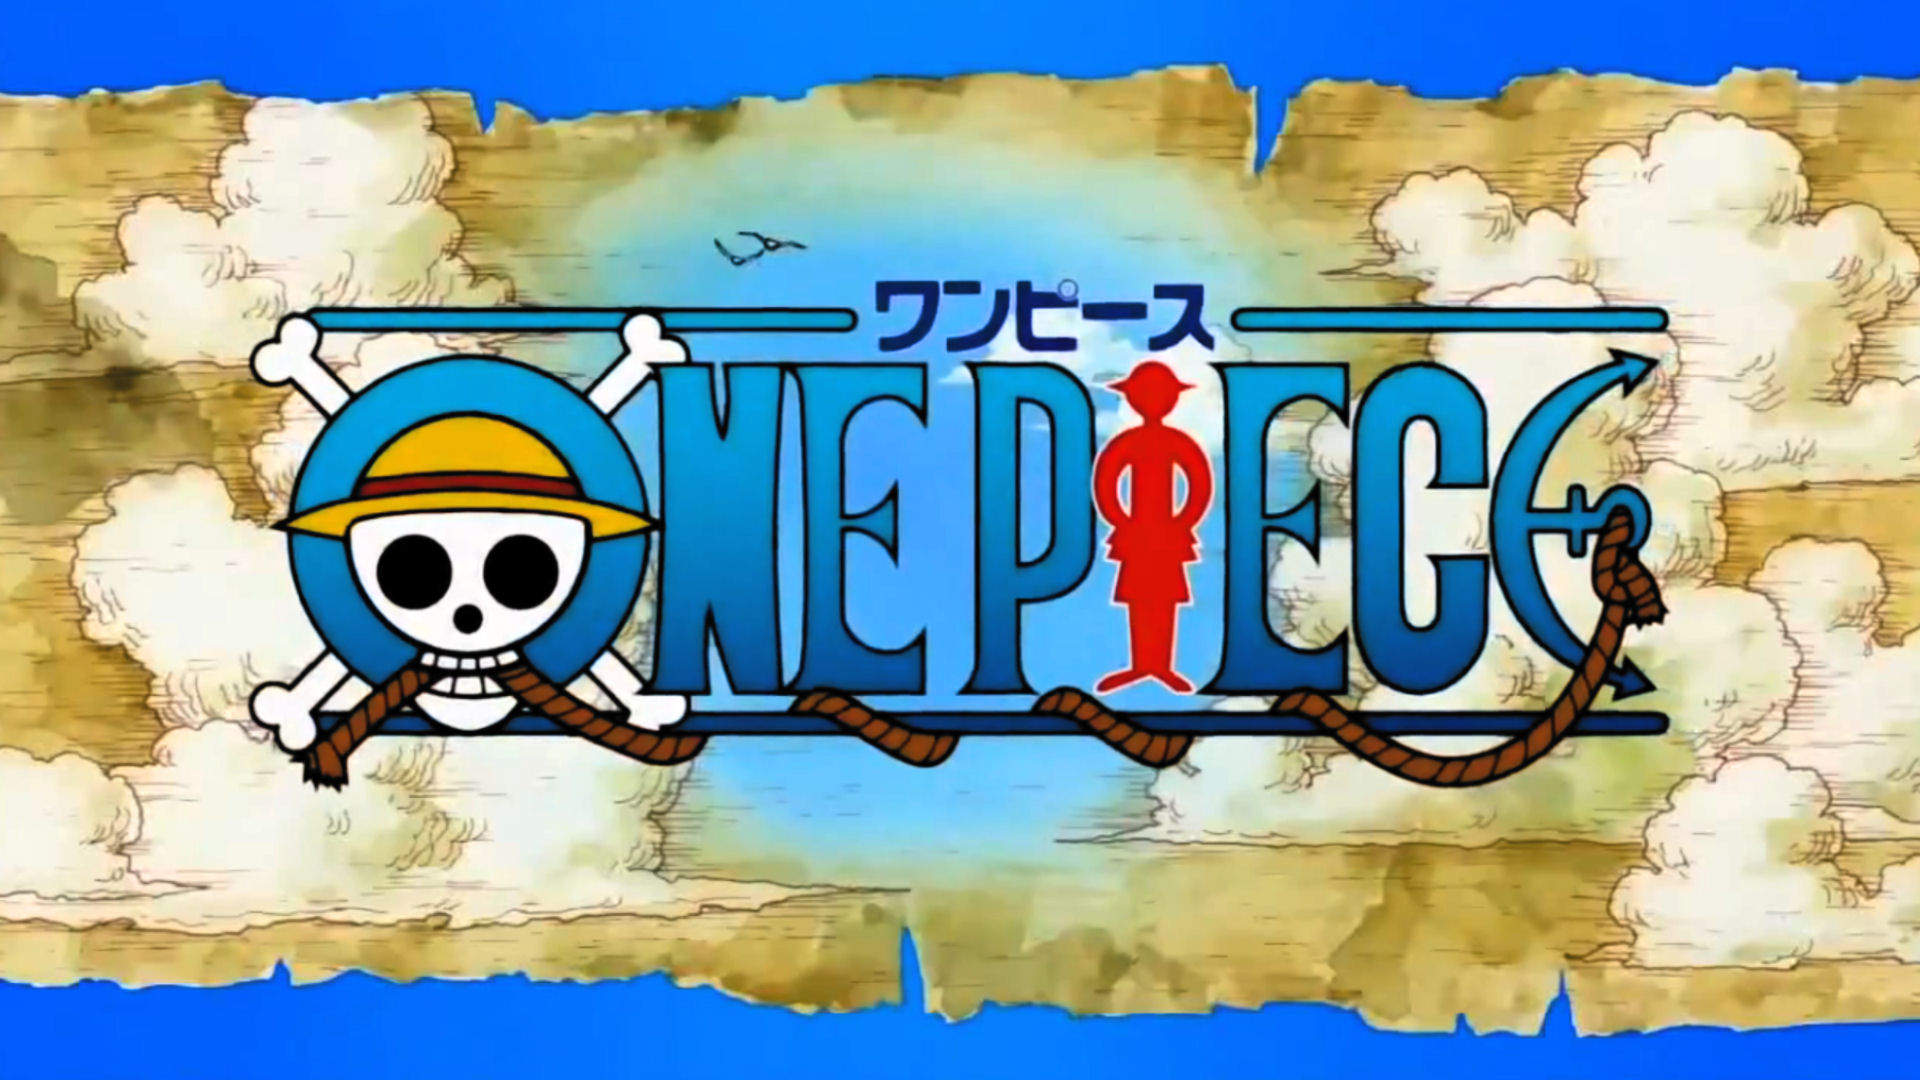 One Piece Wallpaper Iphone Background - One Piece Wallpapers For Laptop Anime - HD Wallpaper